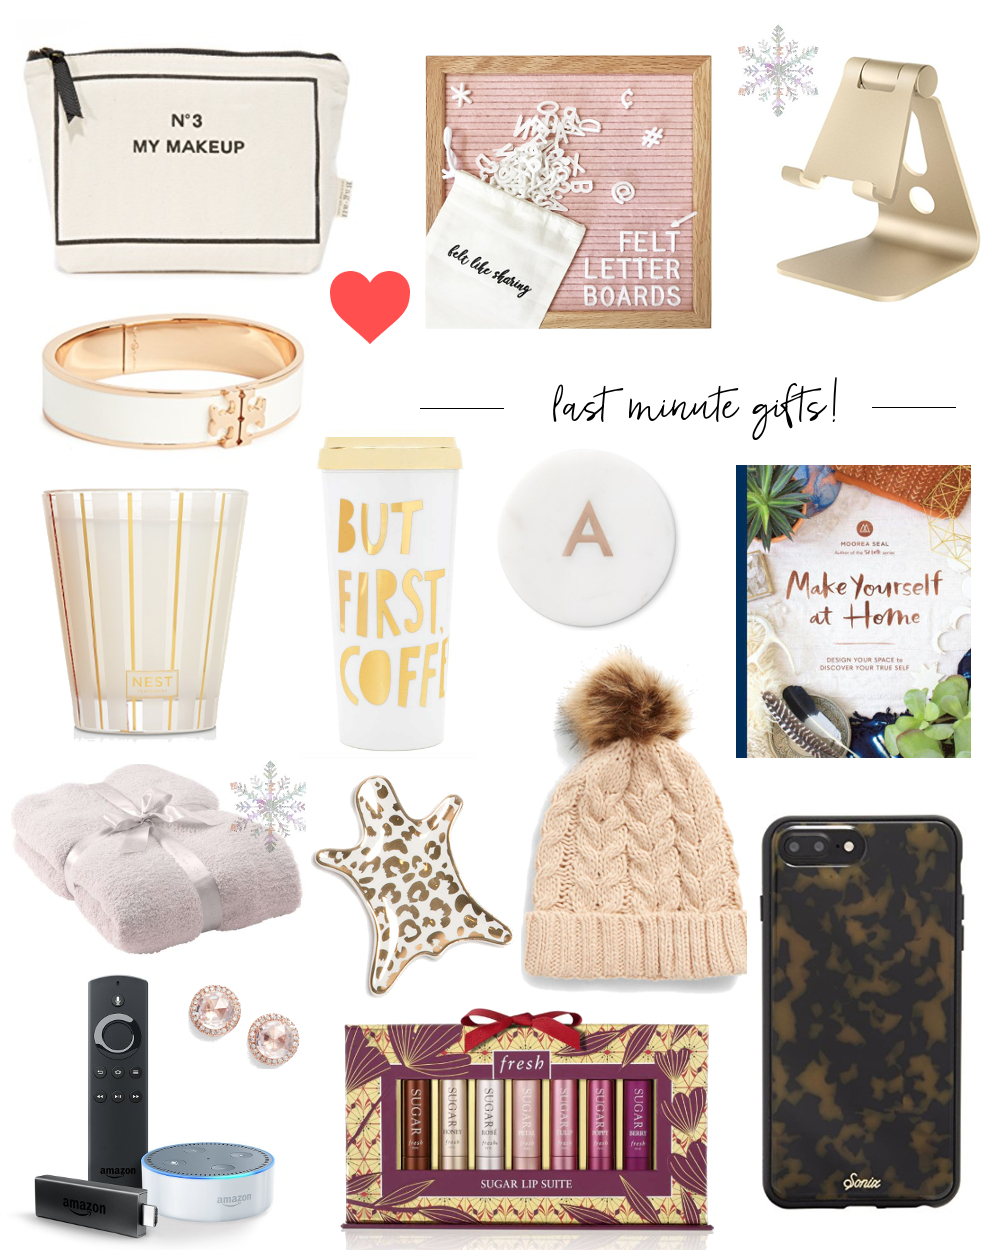 Last minute gift ideas for her 2017 fancy things can you believe there are only 5 days until christmas i wanted to share some last minute gift ideas if youre like me and still need to pick up some gifts solutioingenieria Images